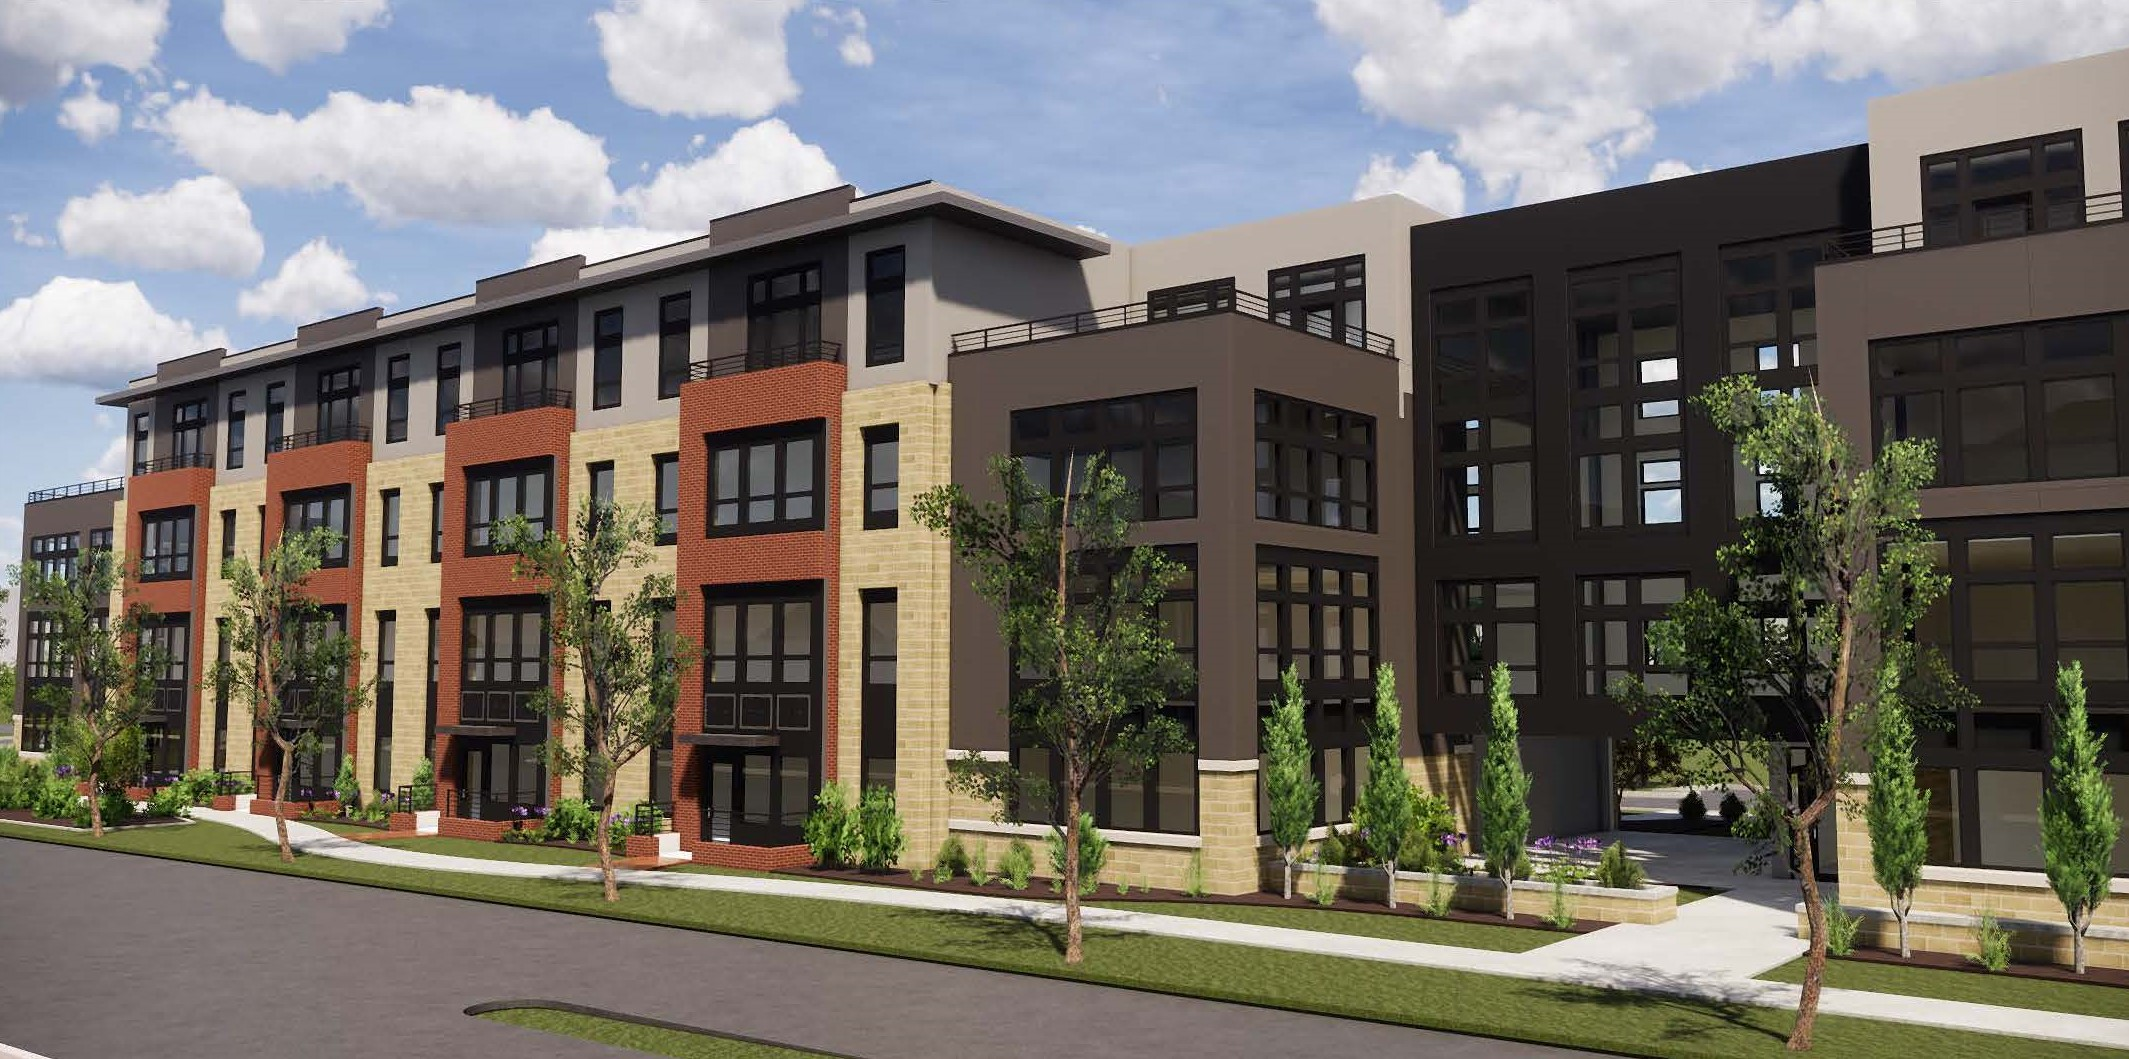 Etna Road Apartments workforce housing. Renderings by Karrick Sherrill, VP Urban Architecture Studio, Shremshock Architects.